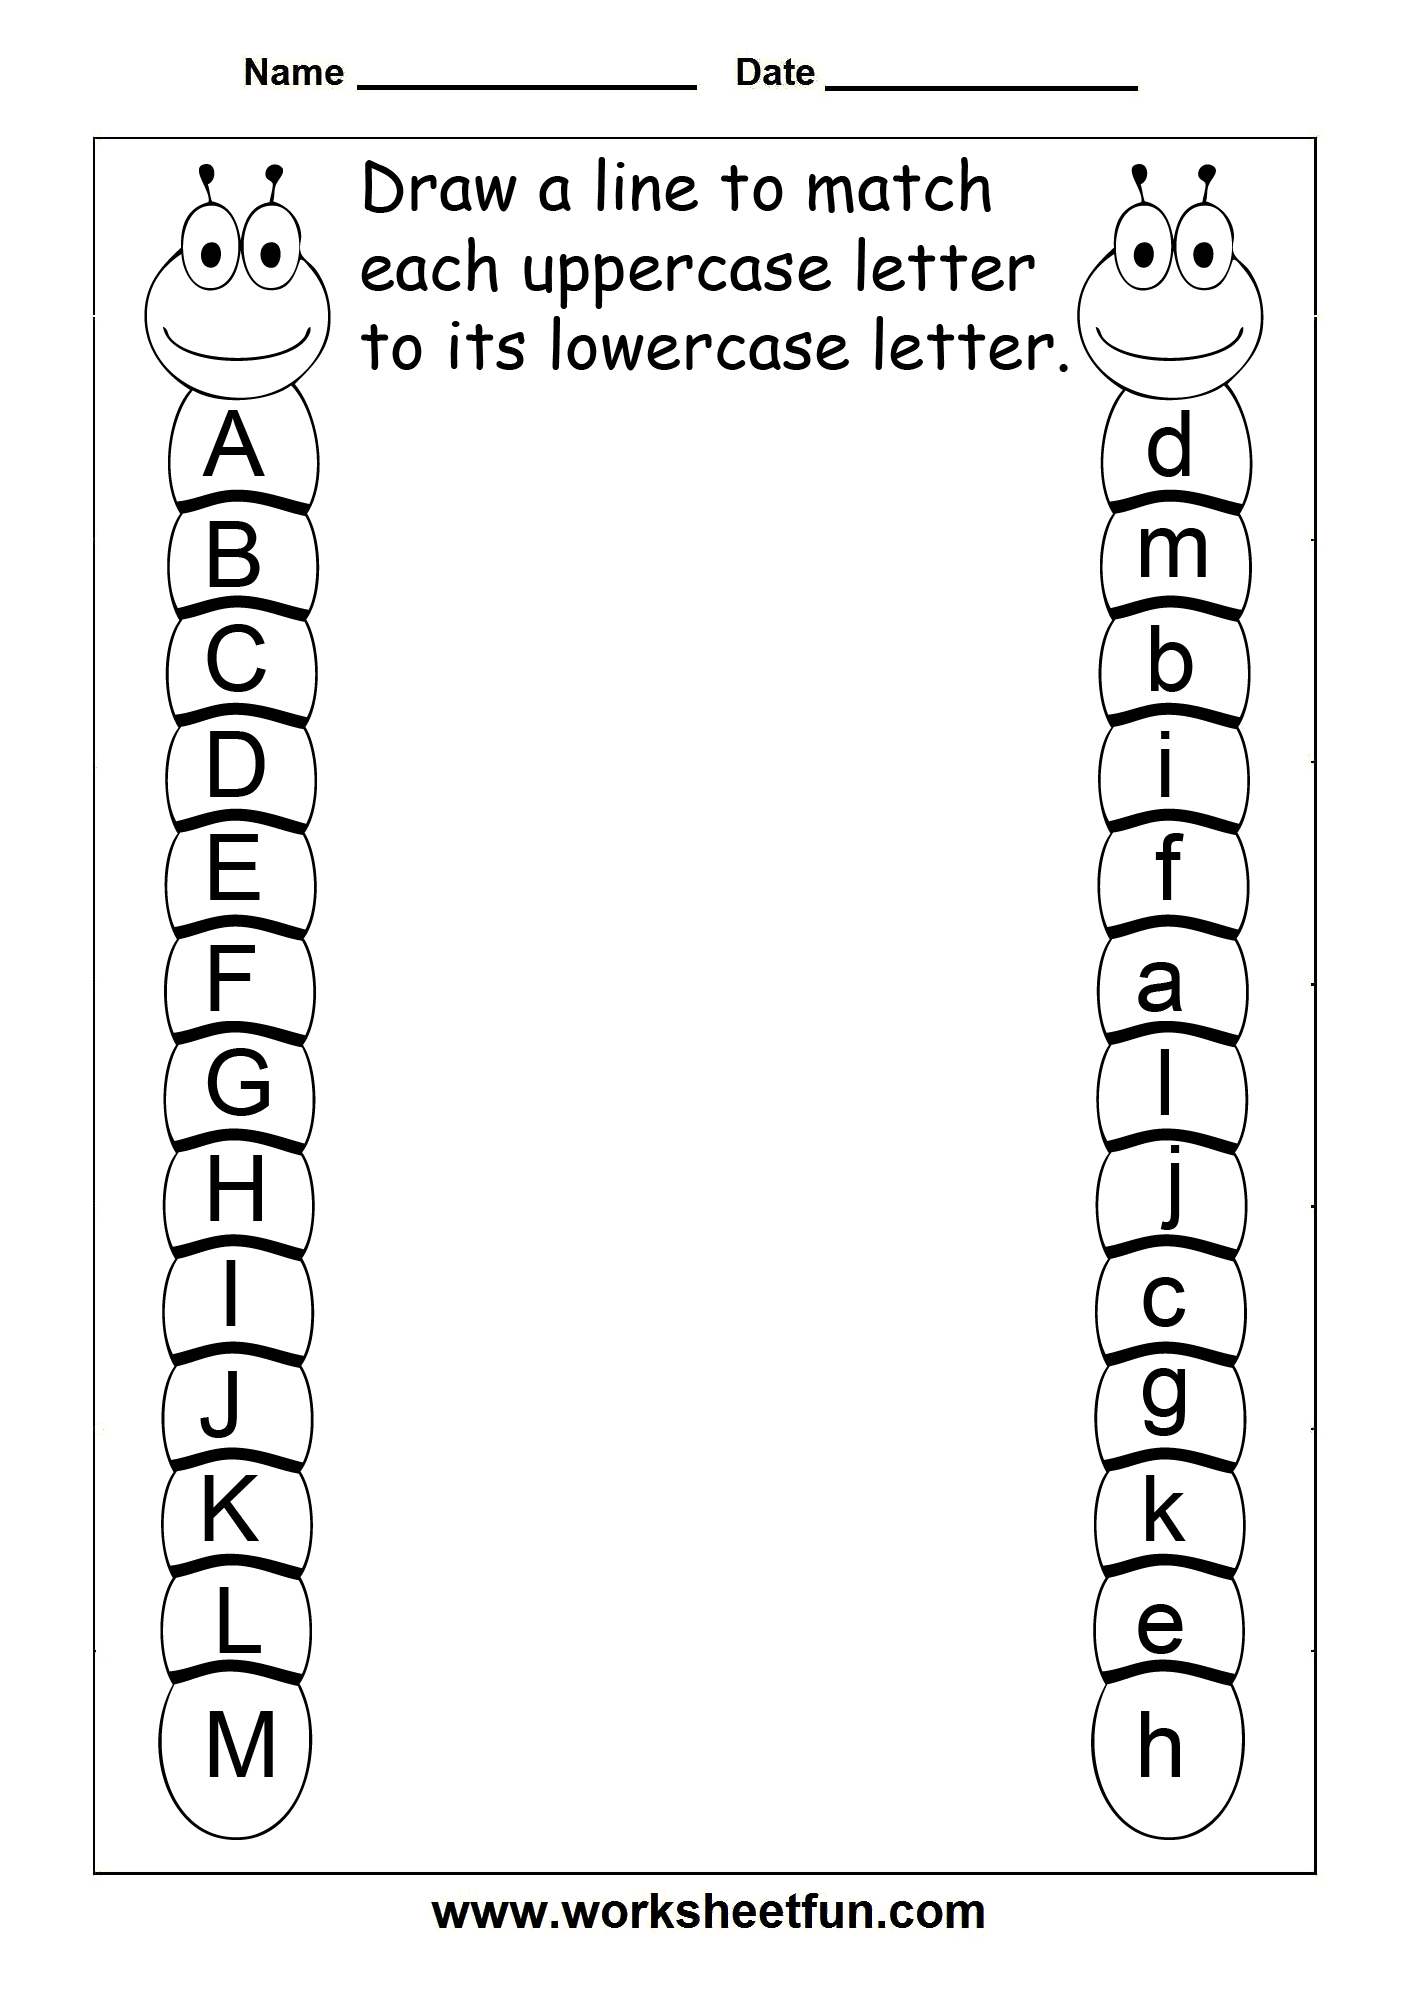 letter worksheets on pinterest learning arabic kindergarten worksheets and kids learning games. Black Bedroom Furniture Sets. Home Design Ideas